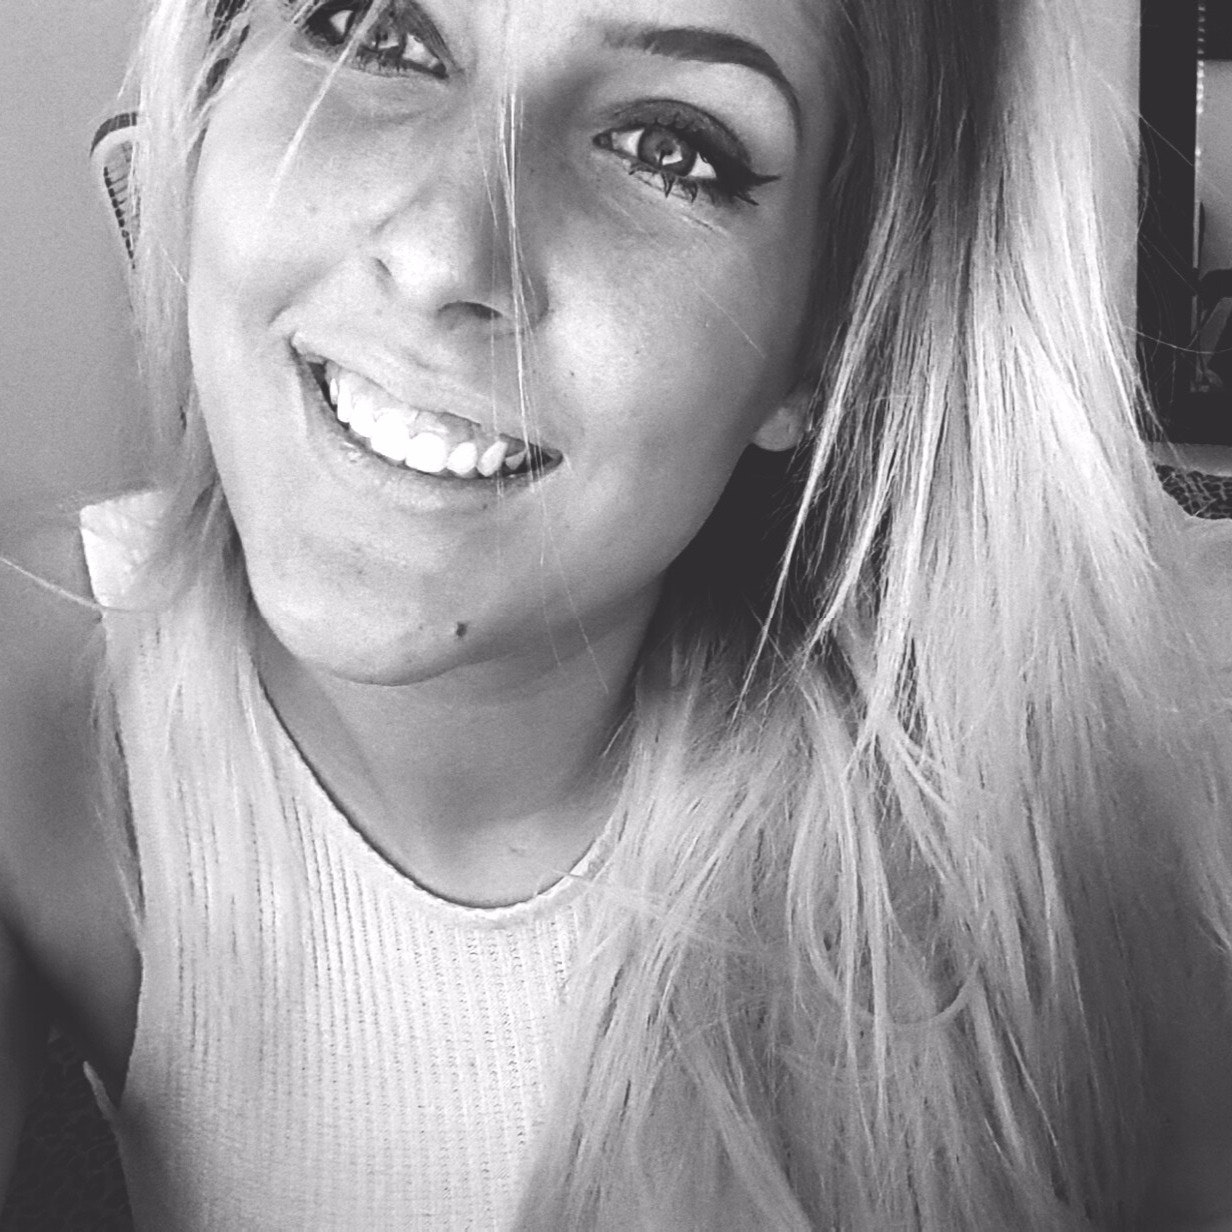 dog walker Rebekah